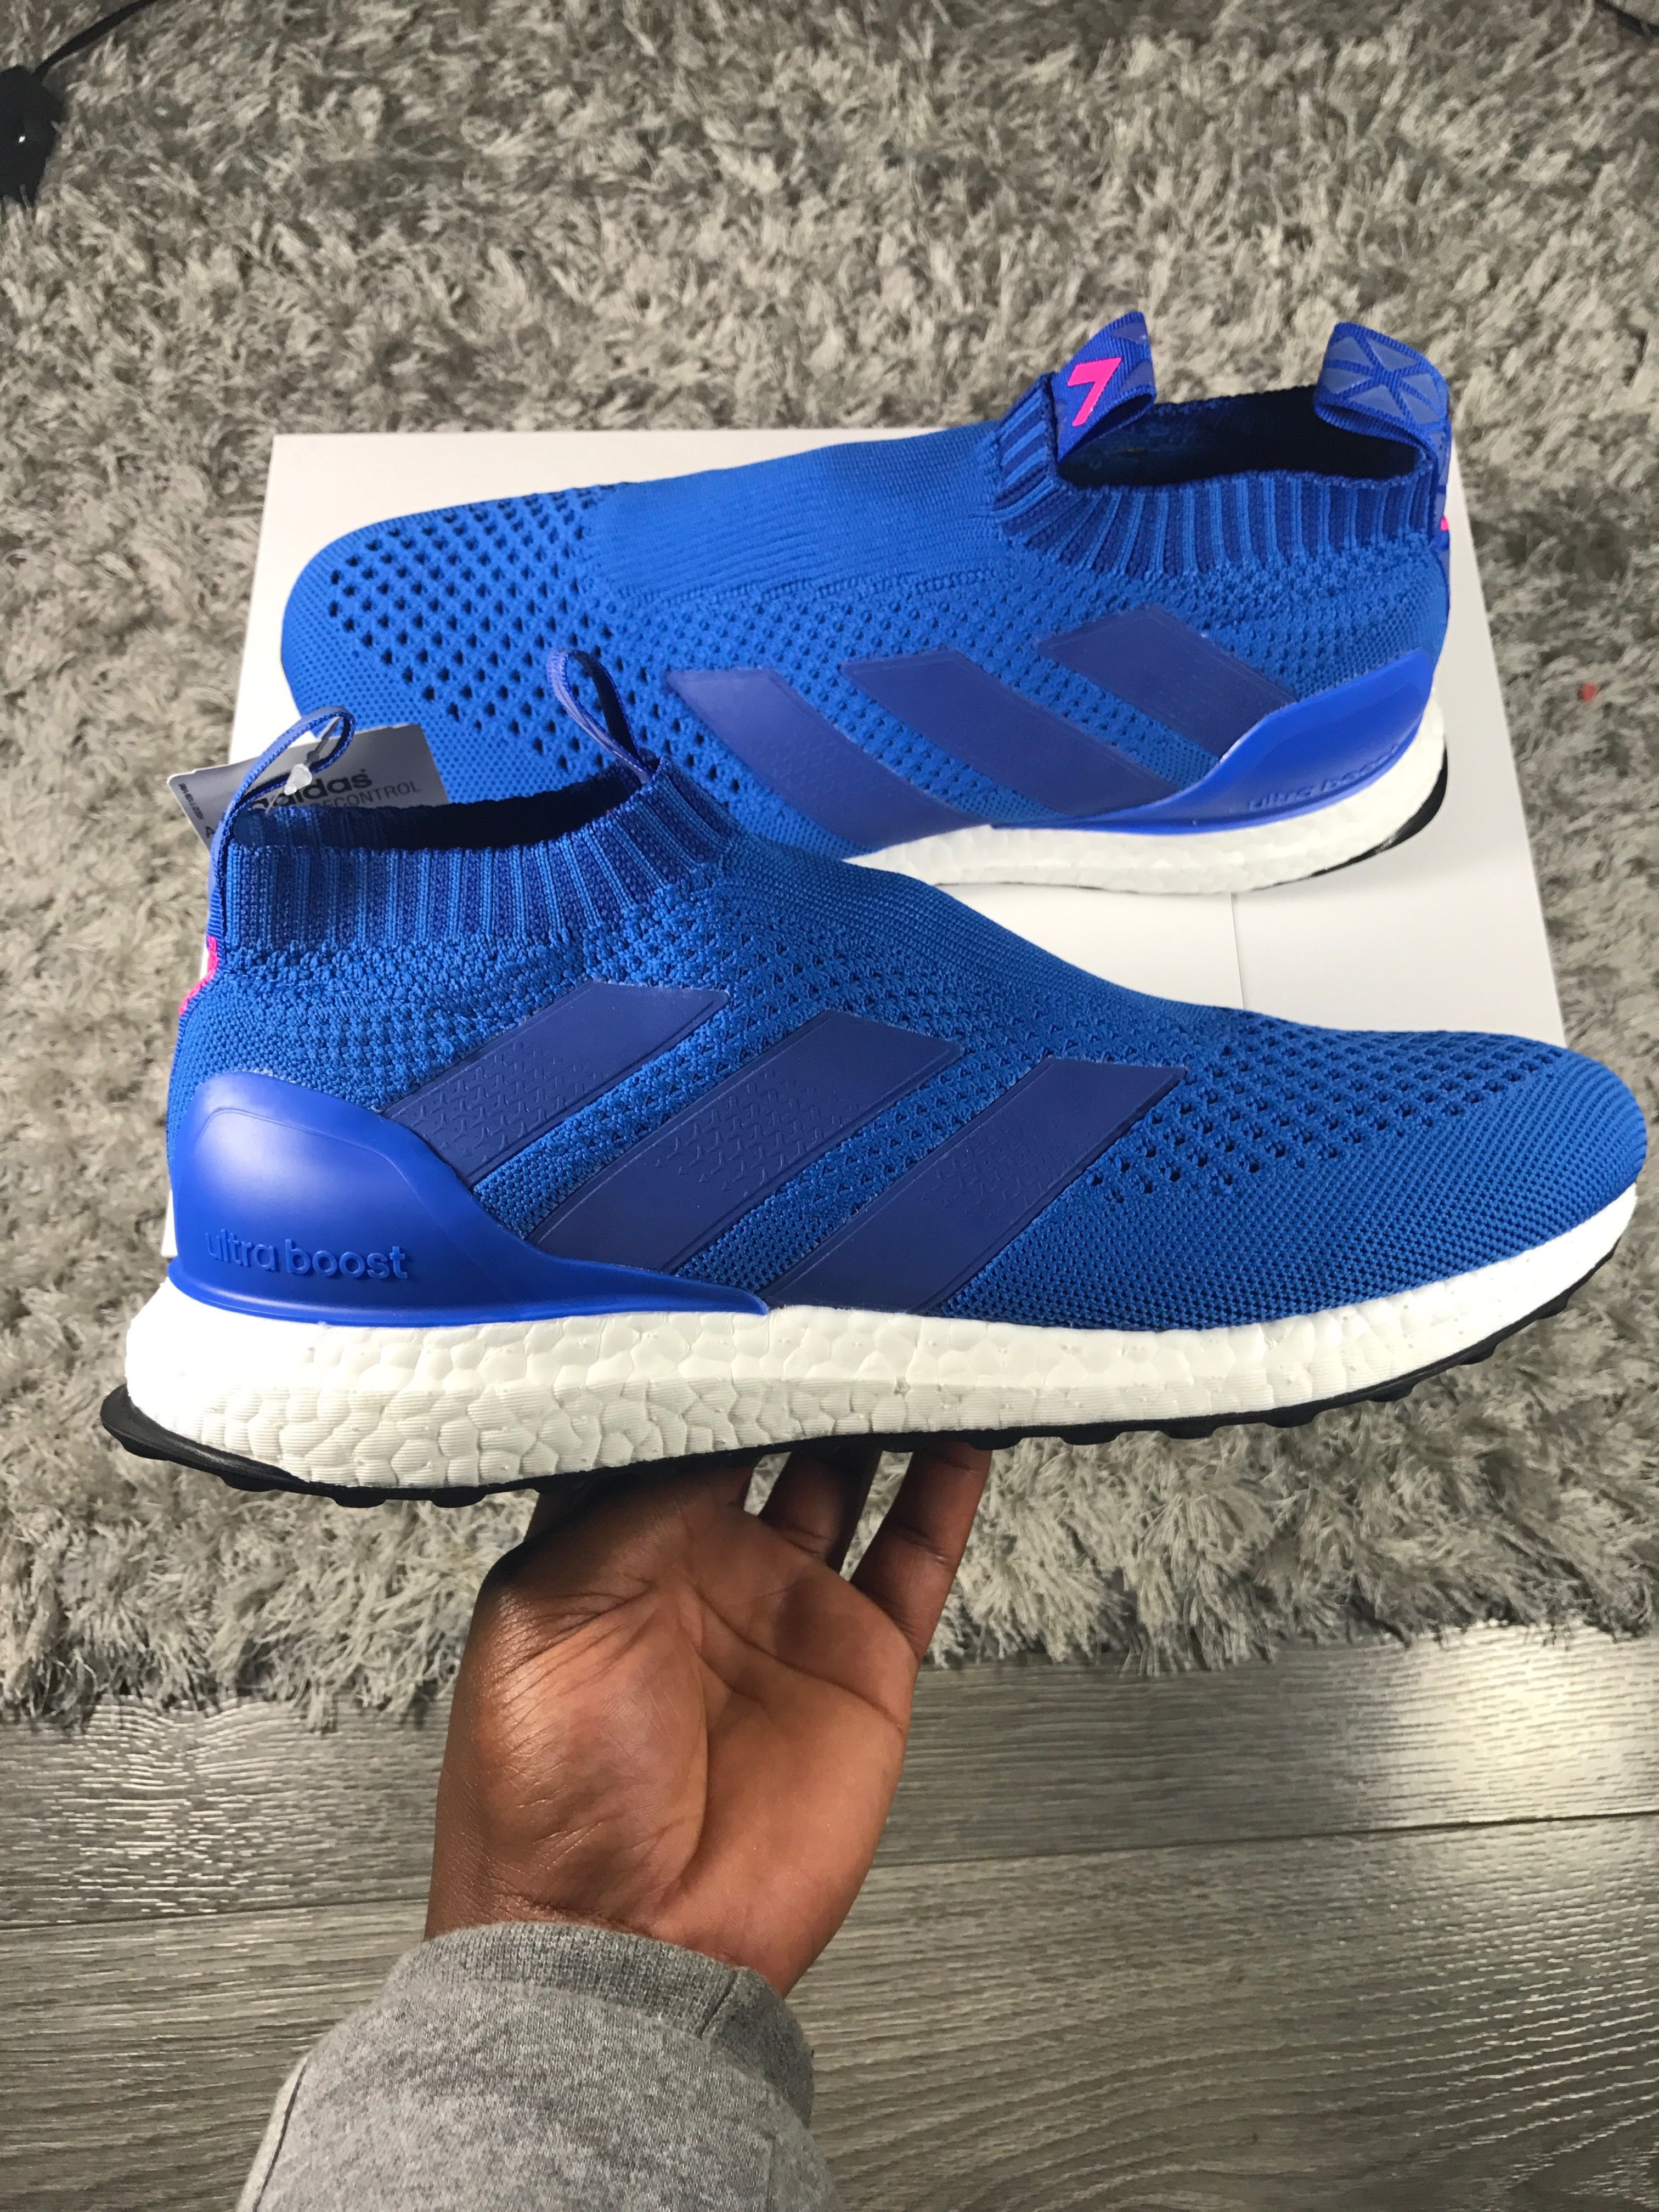 Adidas Ace 17 Purecontrol Ultra Boost Get This Now On Our Site Calzas Tenis Ropa